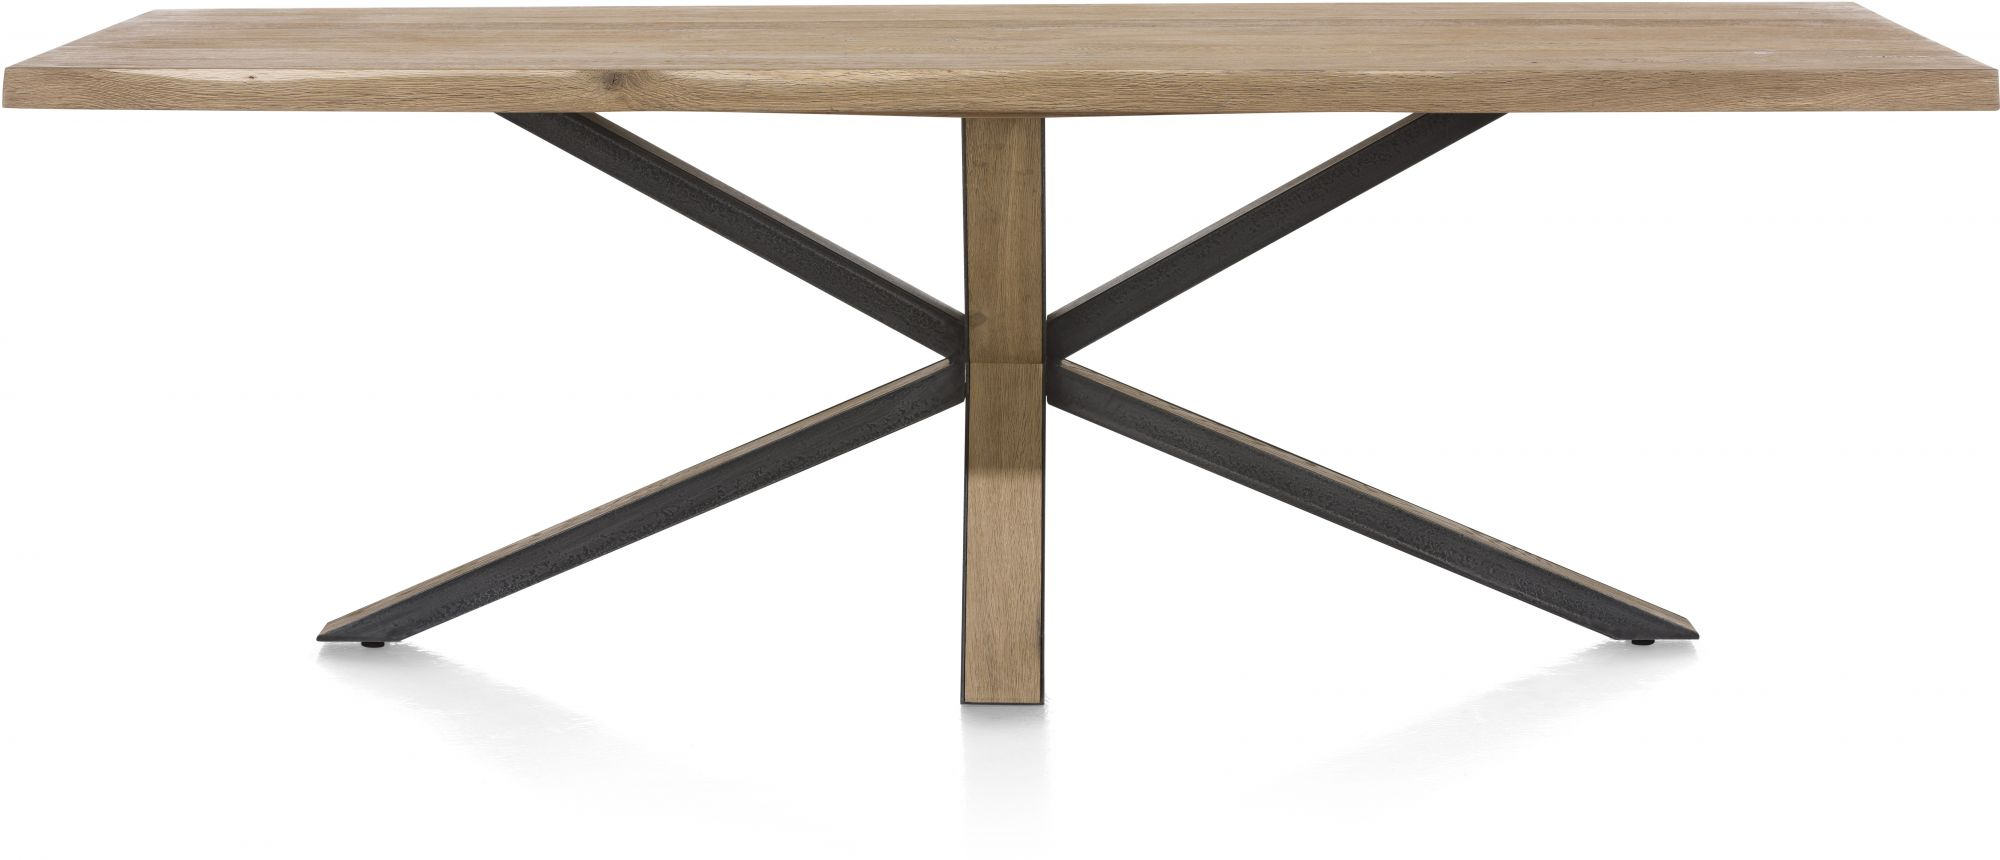 Habufa Ovada Dining Table 4 Sizes Fixed Dining Tables